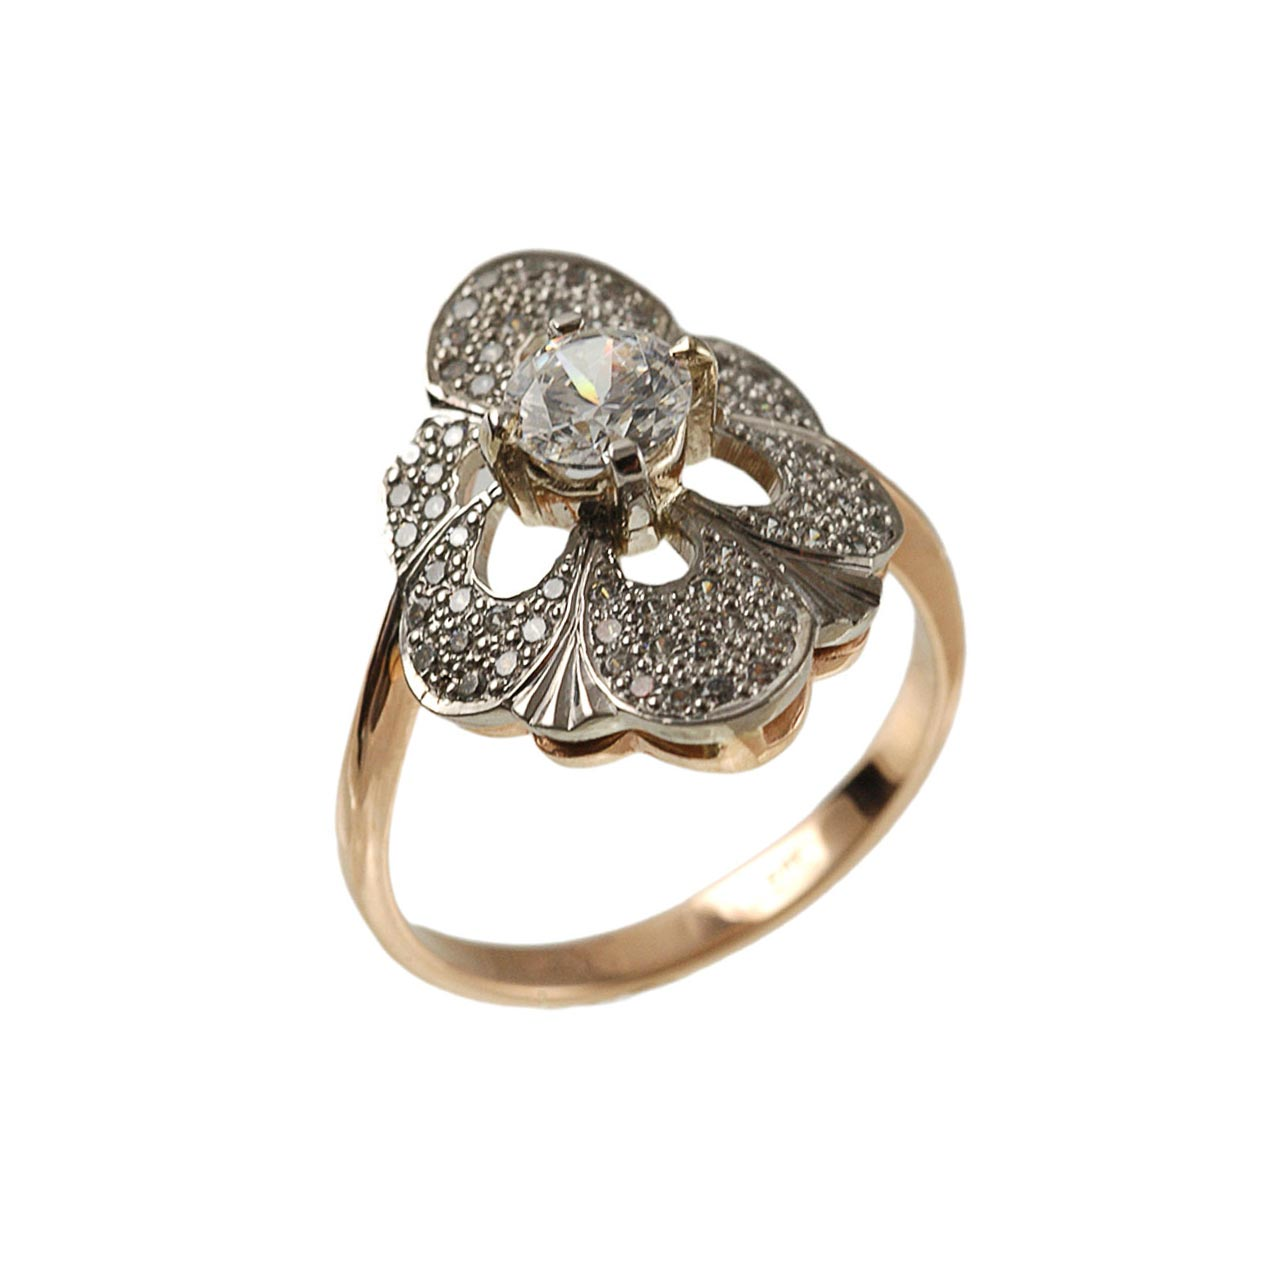 Russian gold vintage ring 1